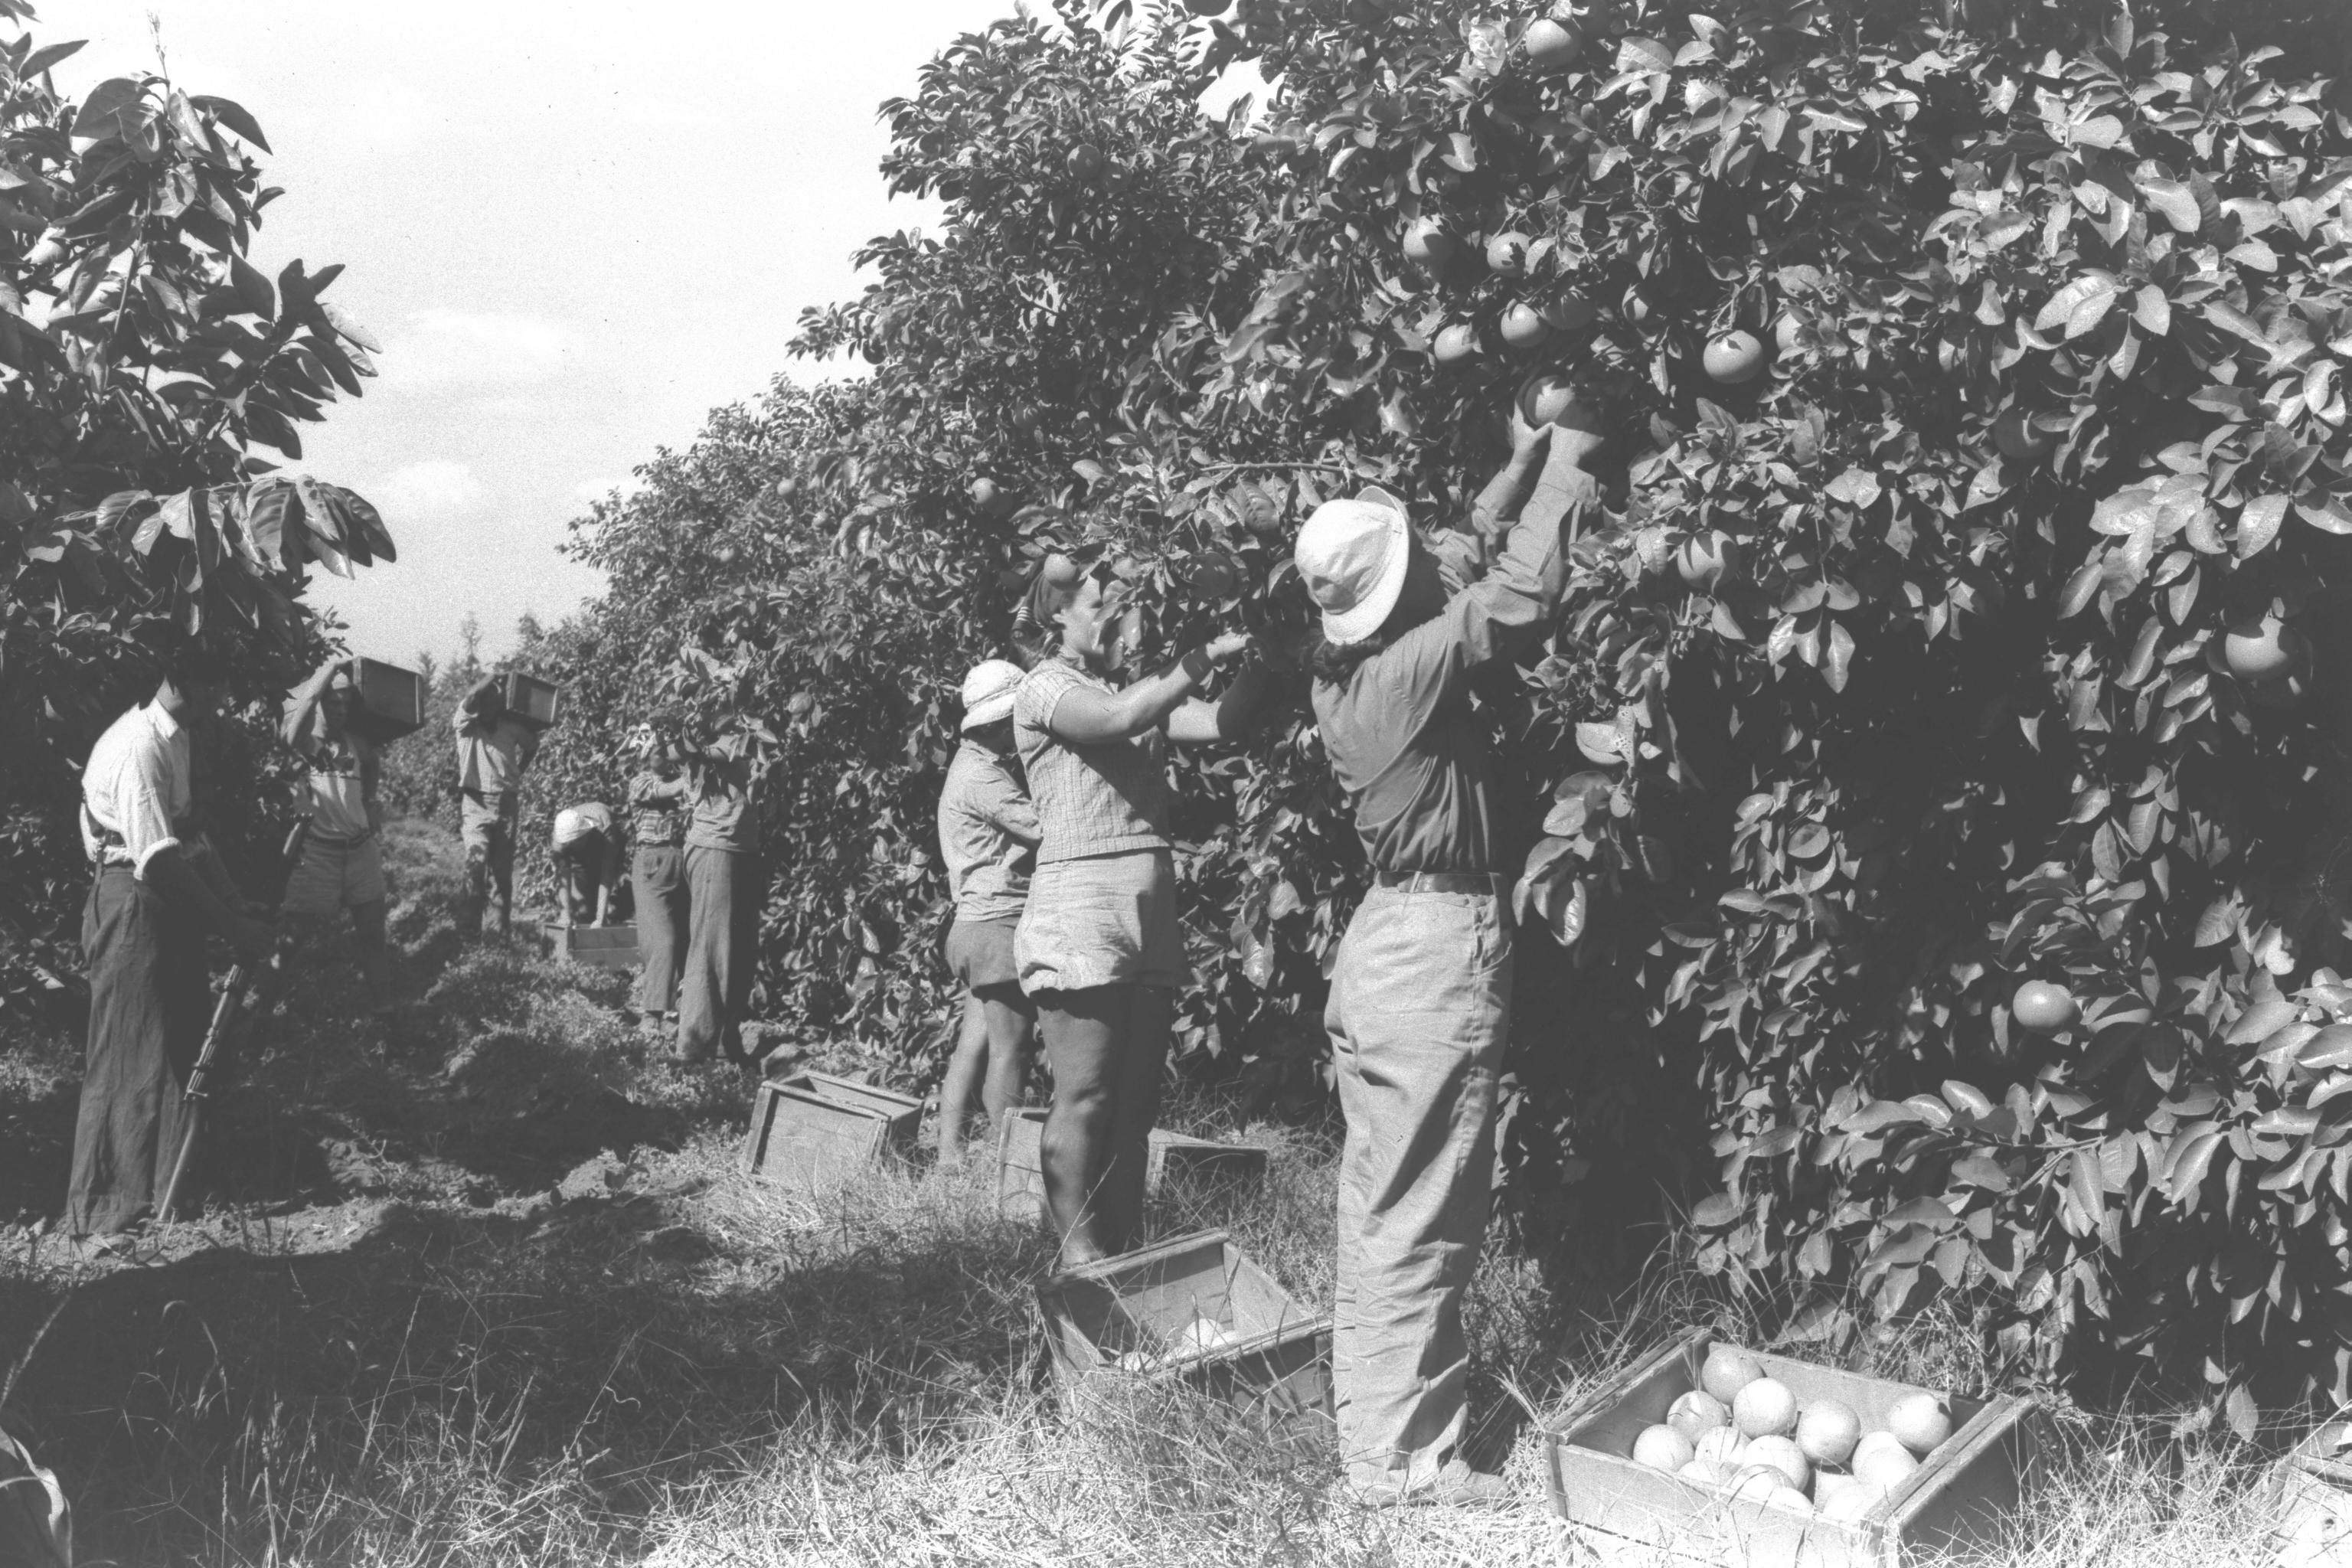 WORKERS IN THE ORANGE GROVE OF KIBBUTZ NA'AN. çìåöéí, òåáãéí á÷èéó úôåæéí á÷éáåõ ðòï.